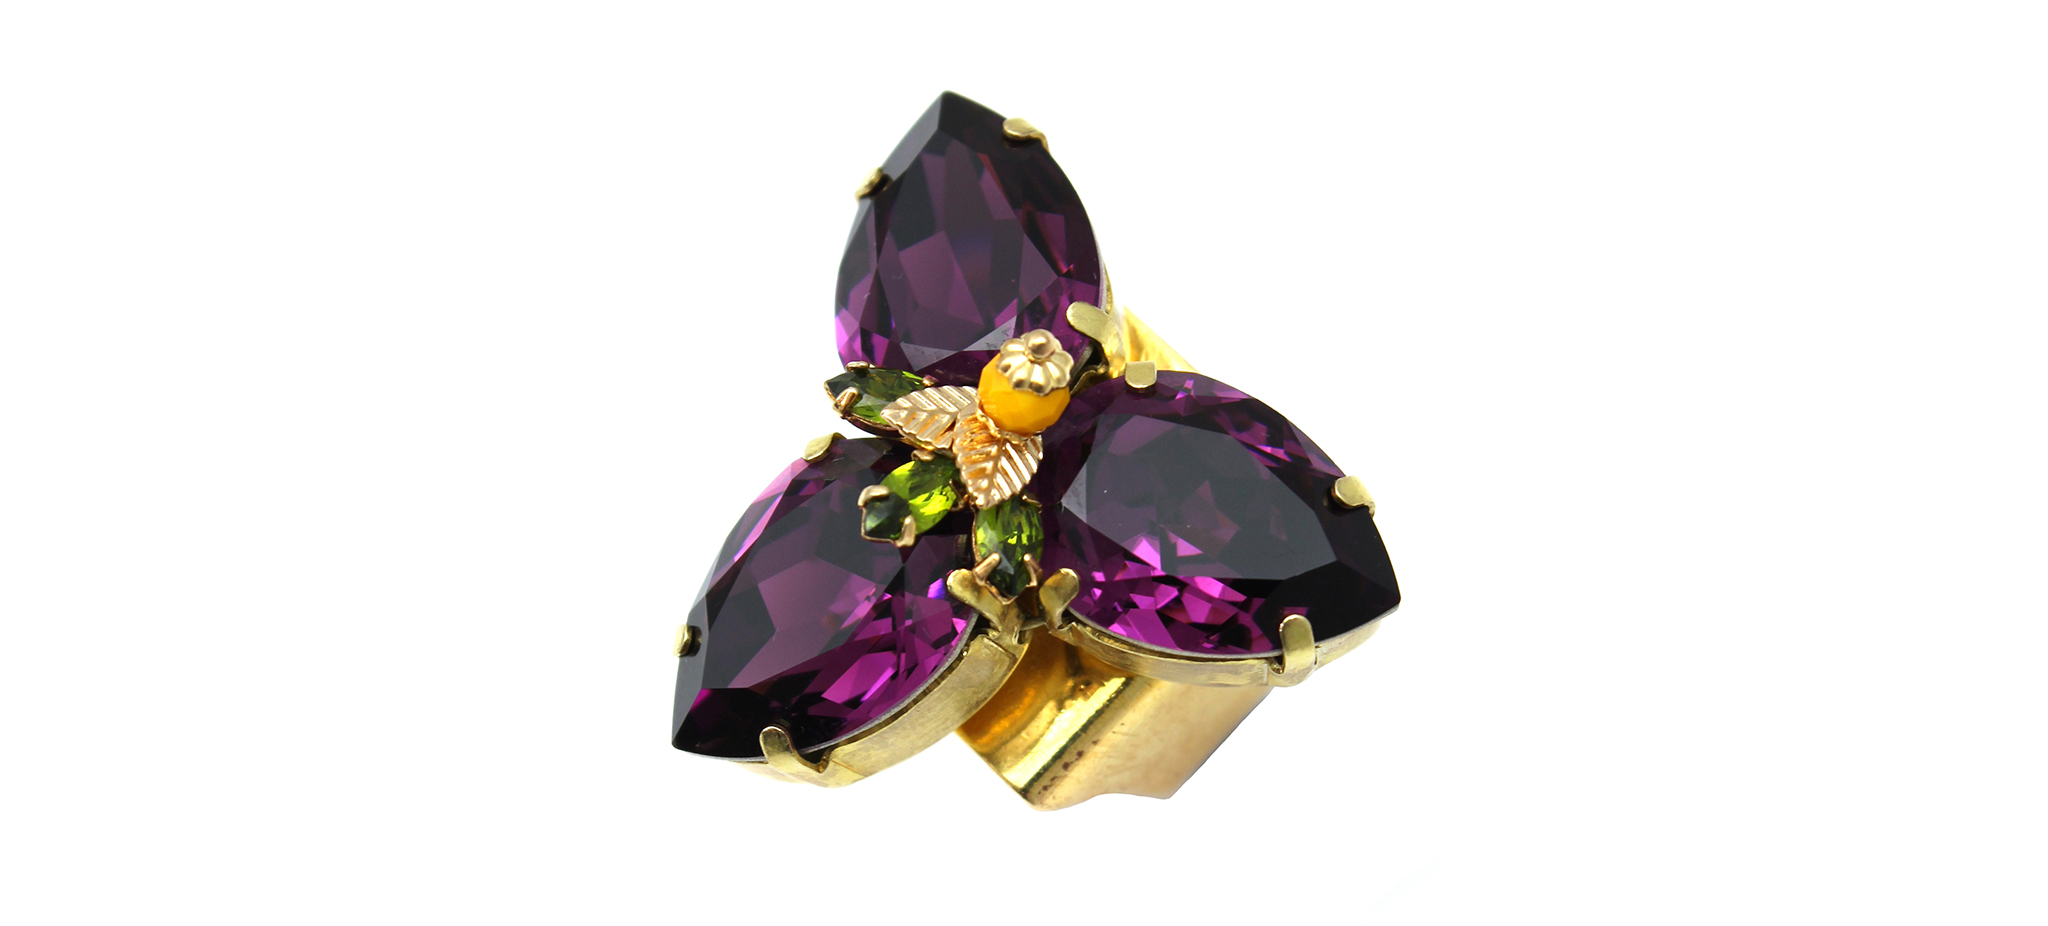 168PL Triple Pear Ring with Figleaf - Purple (2).jpg